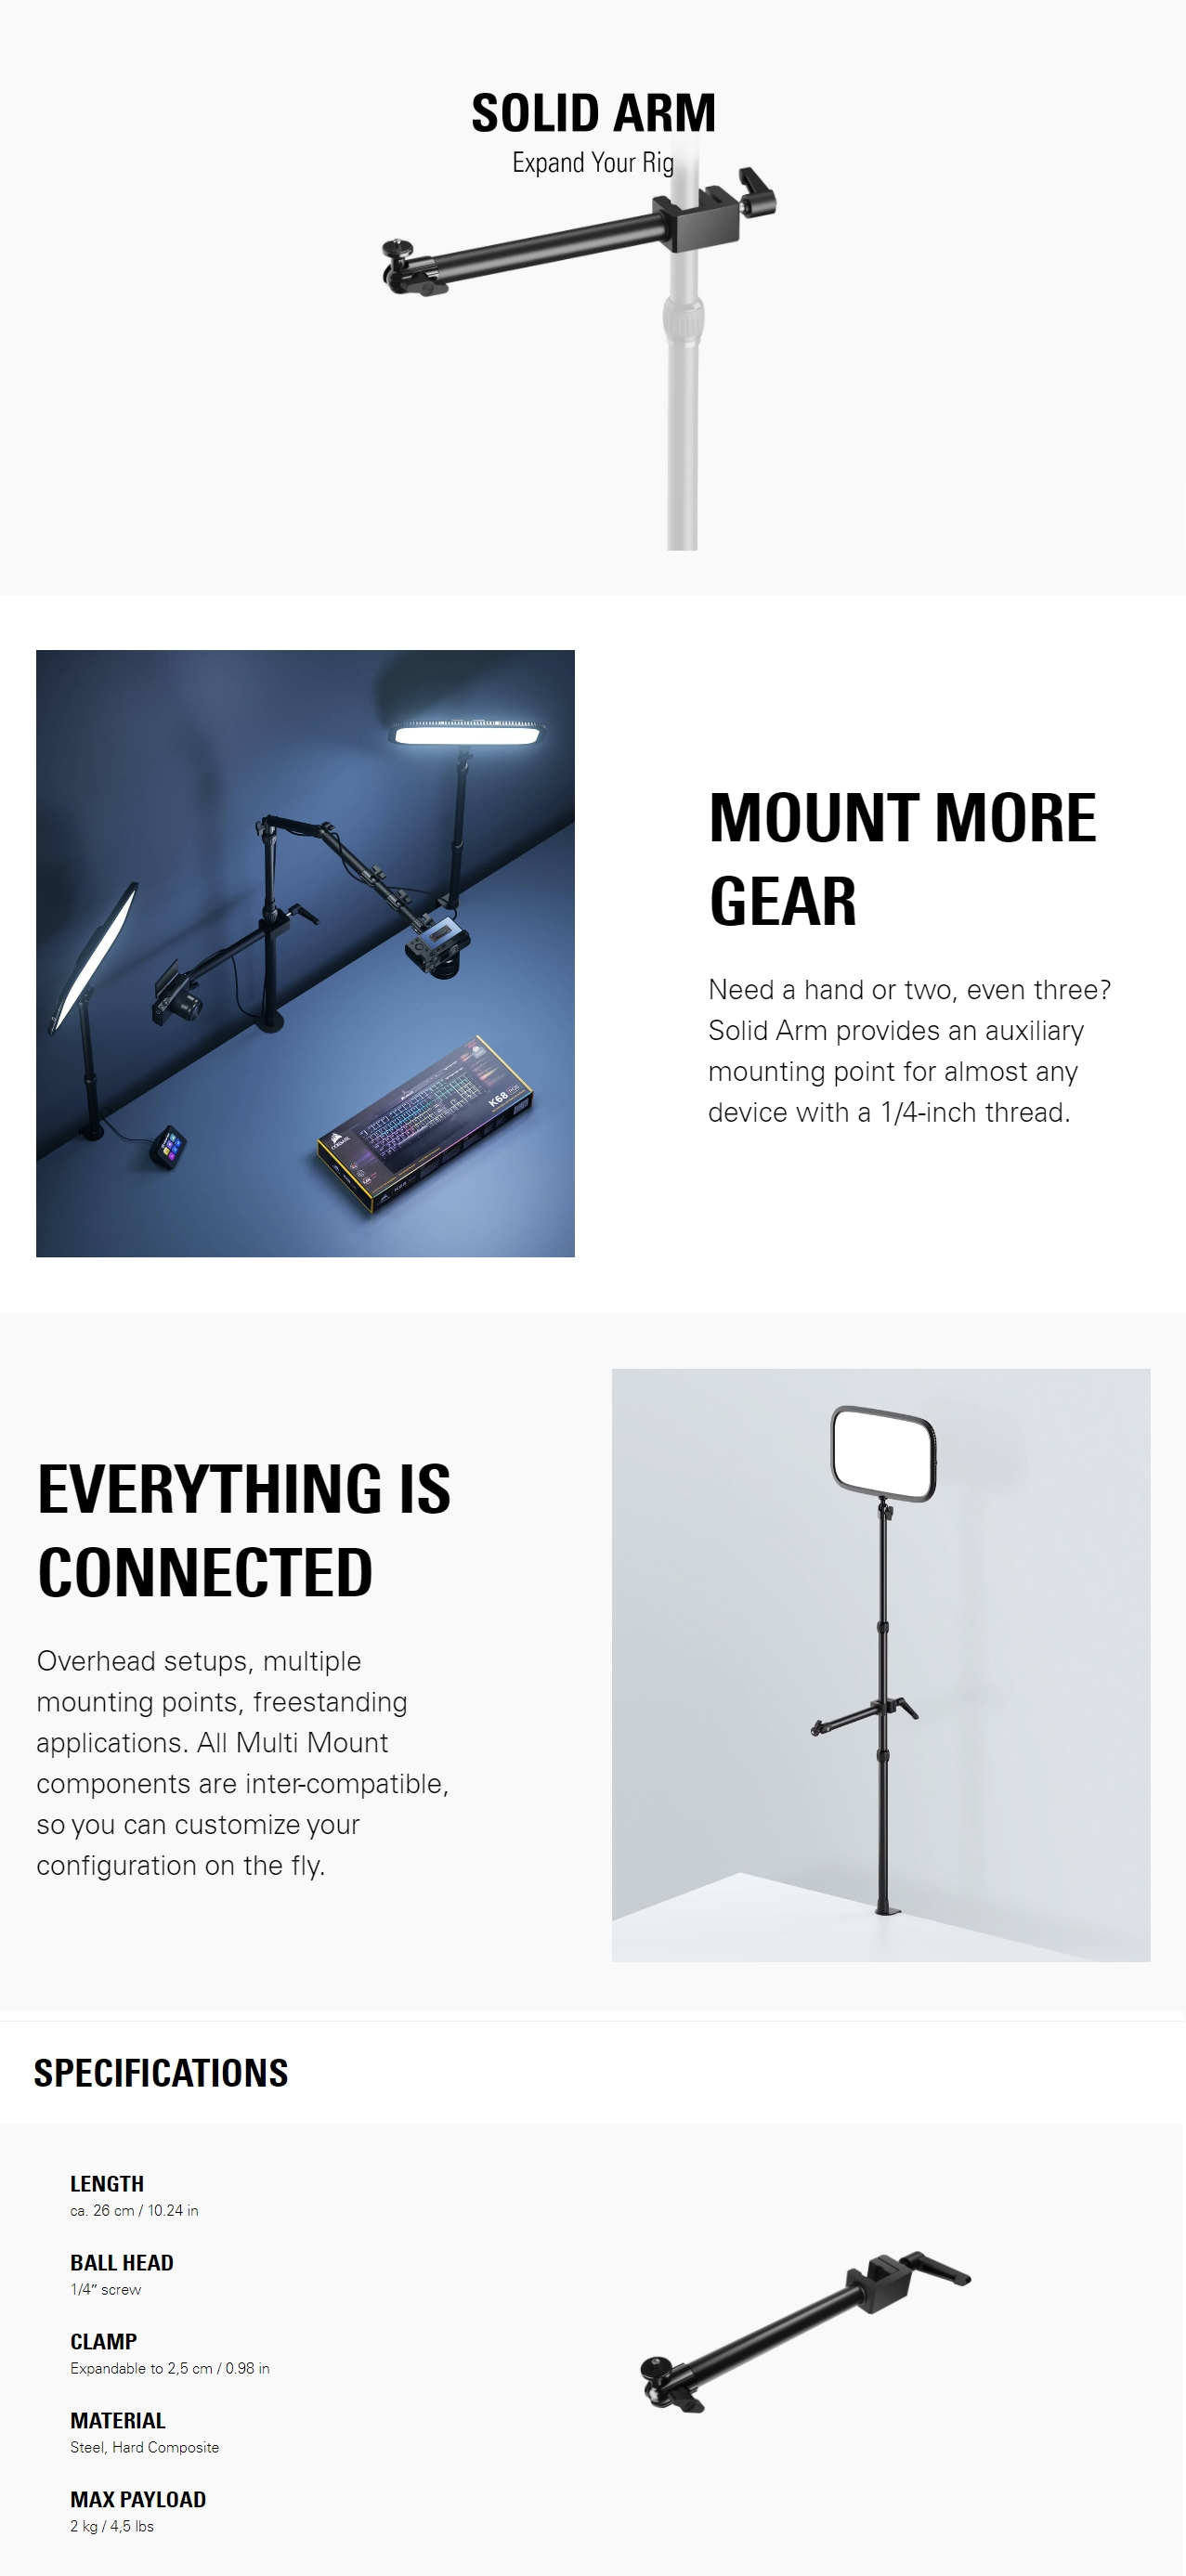 A large marketing image providing additional information about the product Elgato Multi Mount System - Solid Arm - Additional alt info not provided